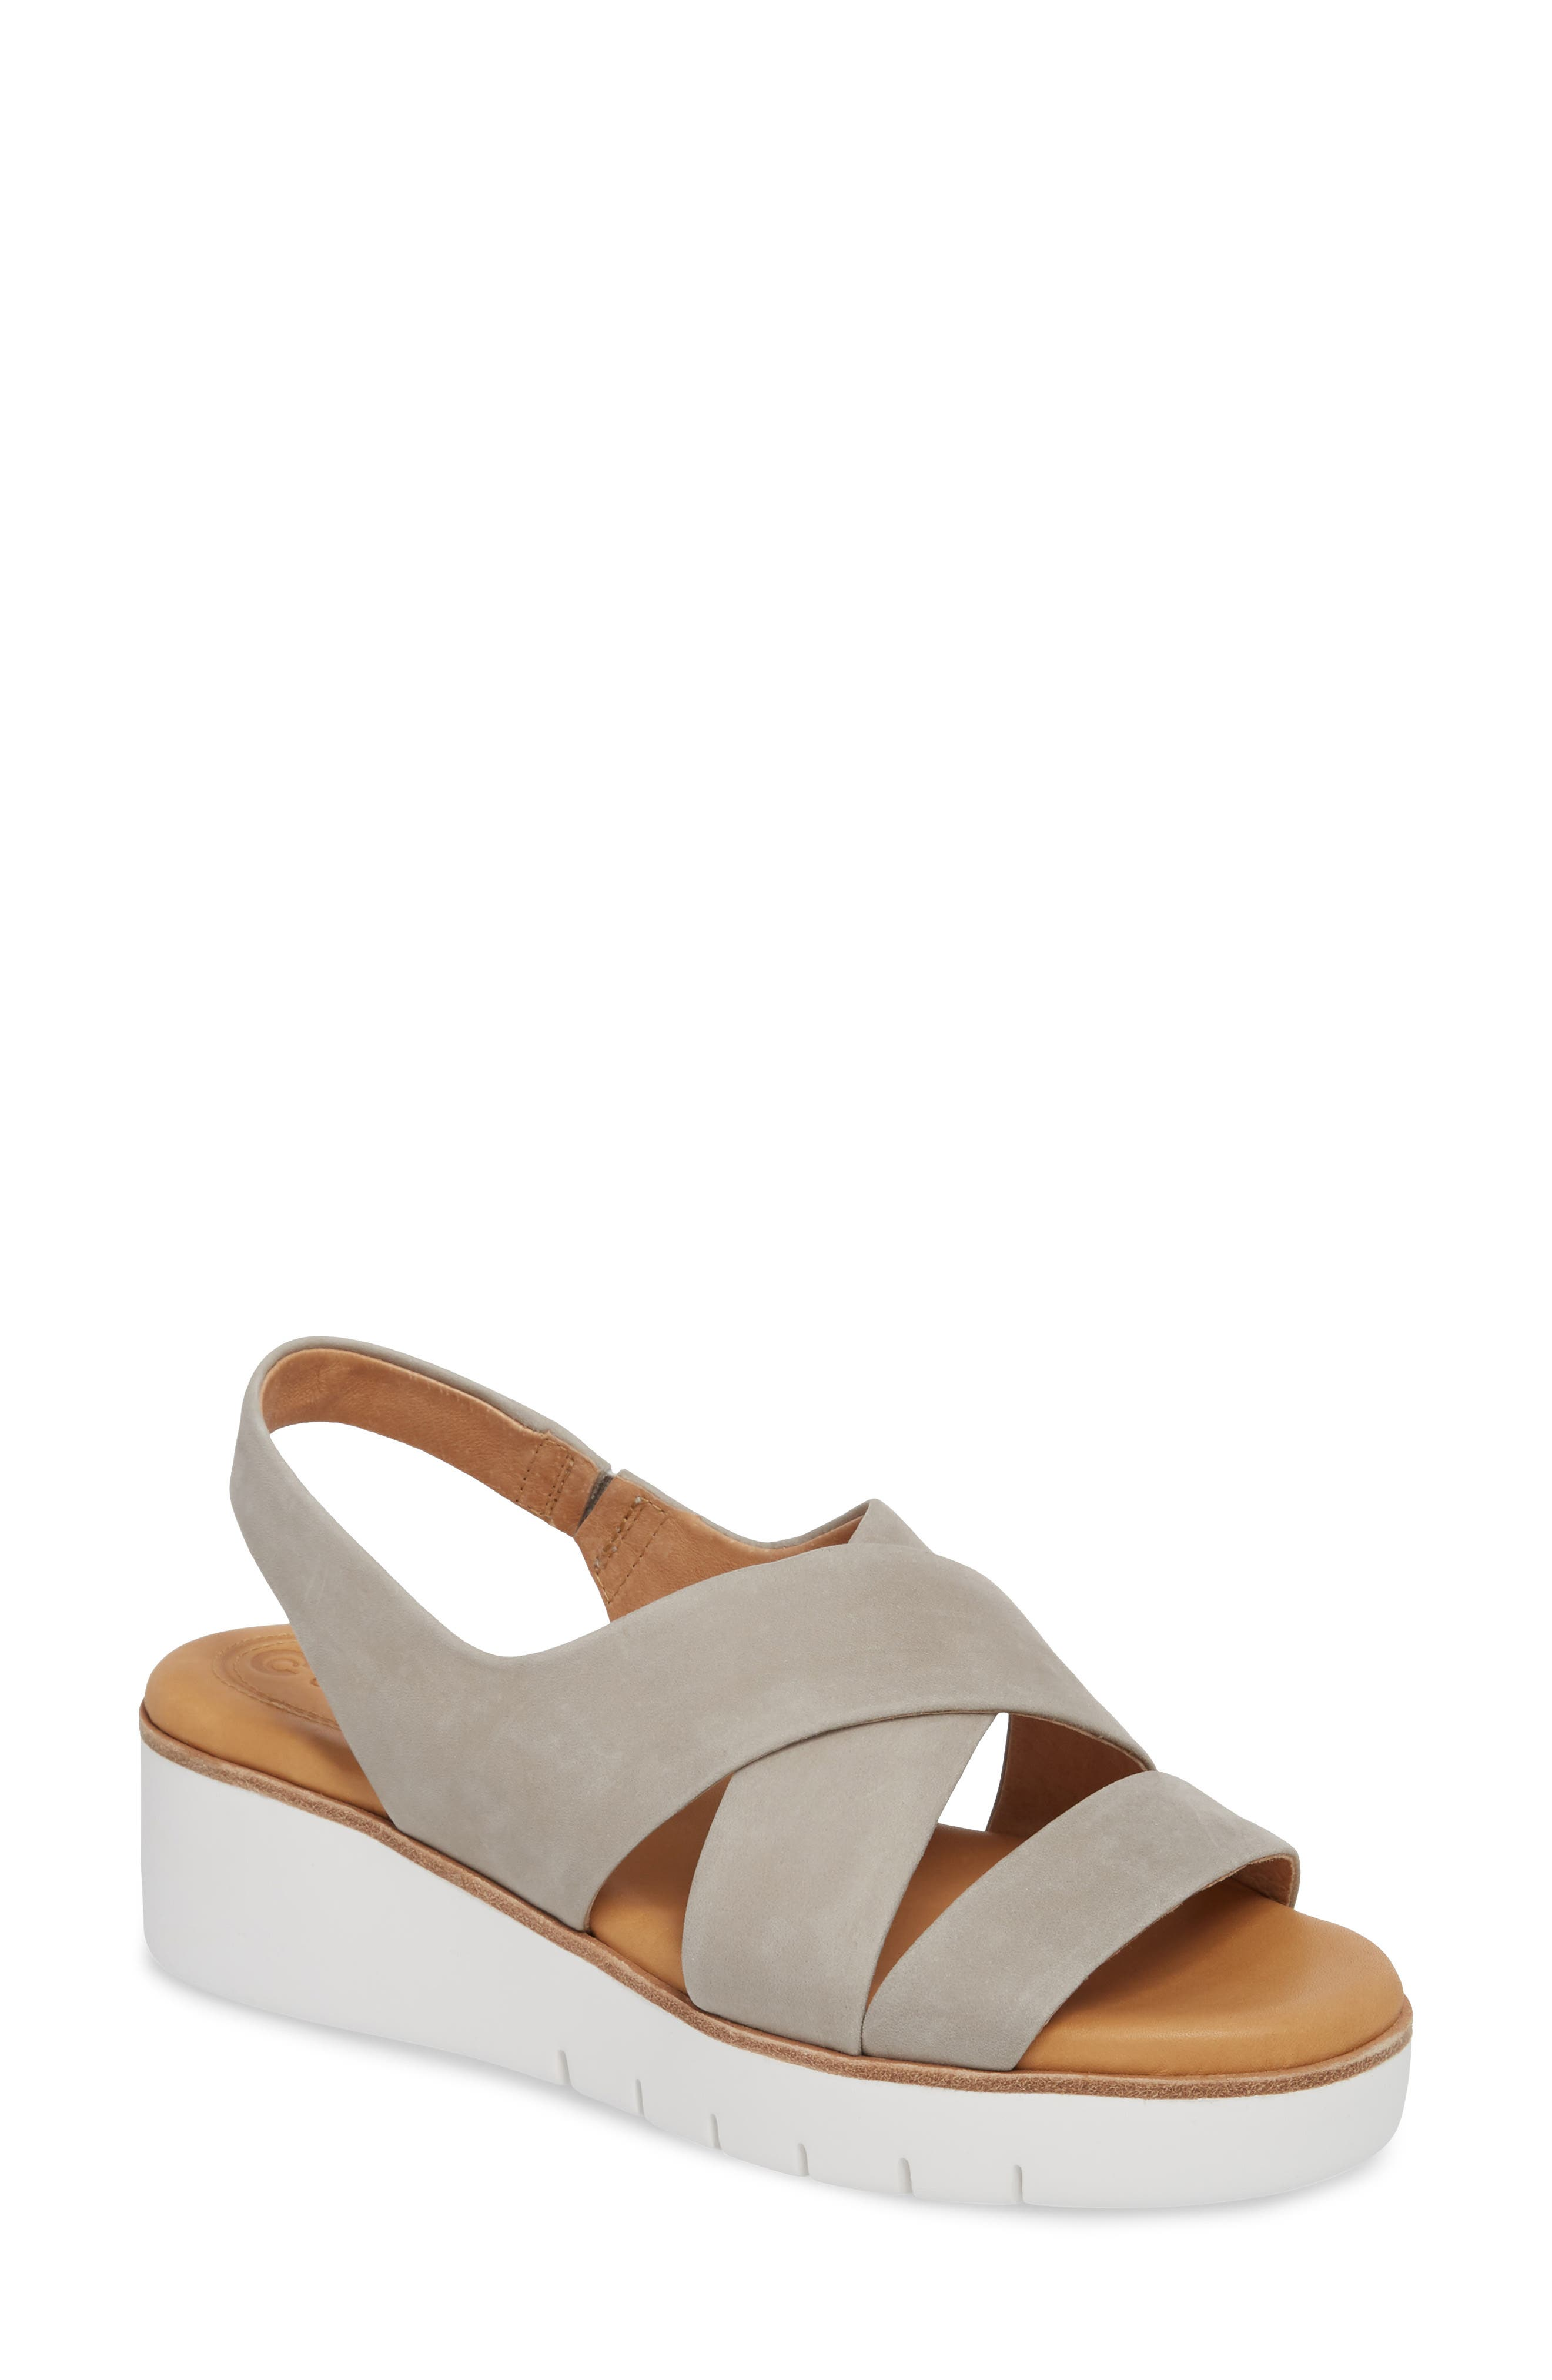 Brinney Wedge Sandal, Main, color, GREY LEATHER